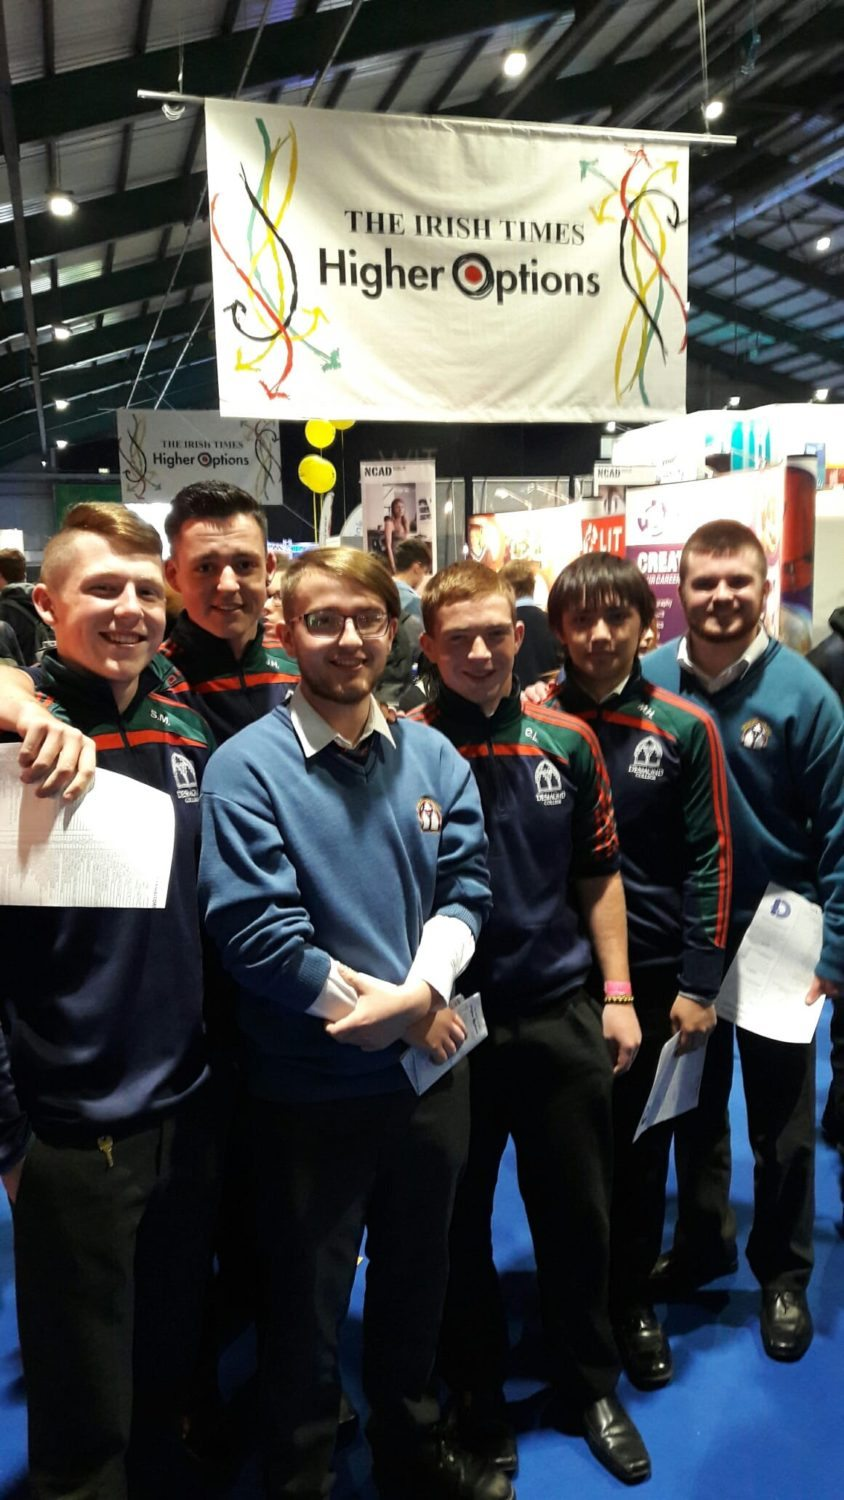 16th Sept 2016: Some of our Leaving Cert students pictured at the Higher Options conference in Dublin